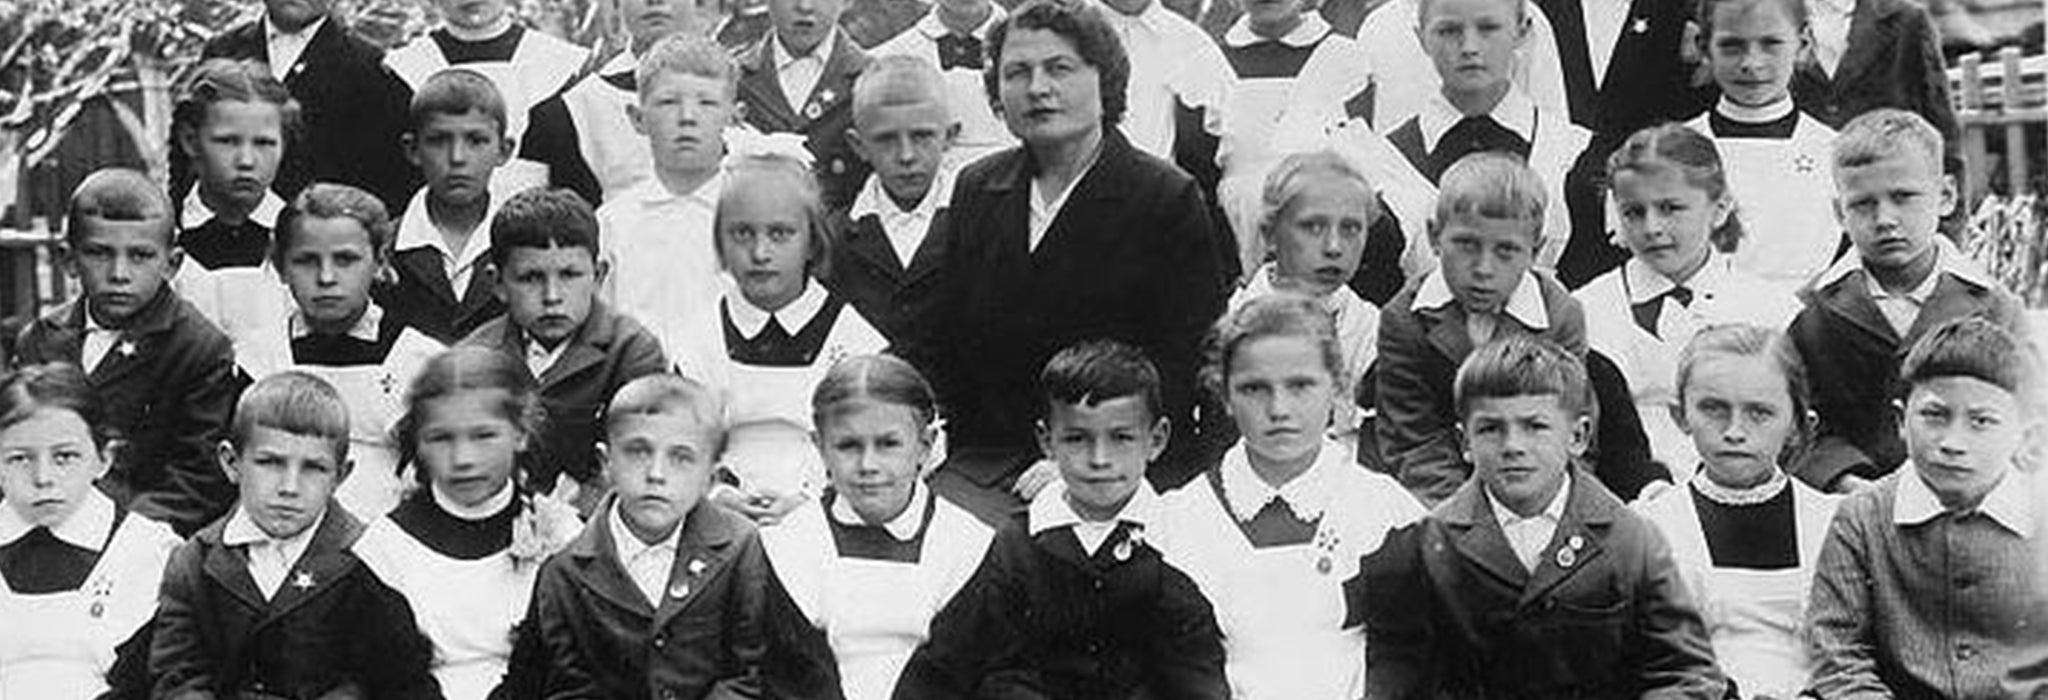 Focus - History of School Uniforms